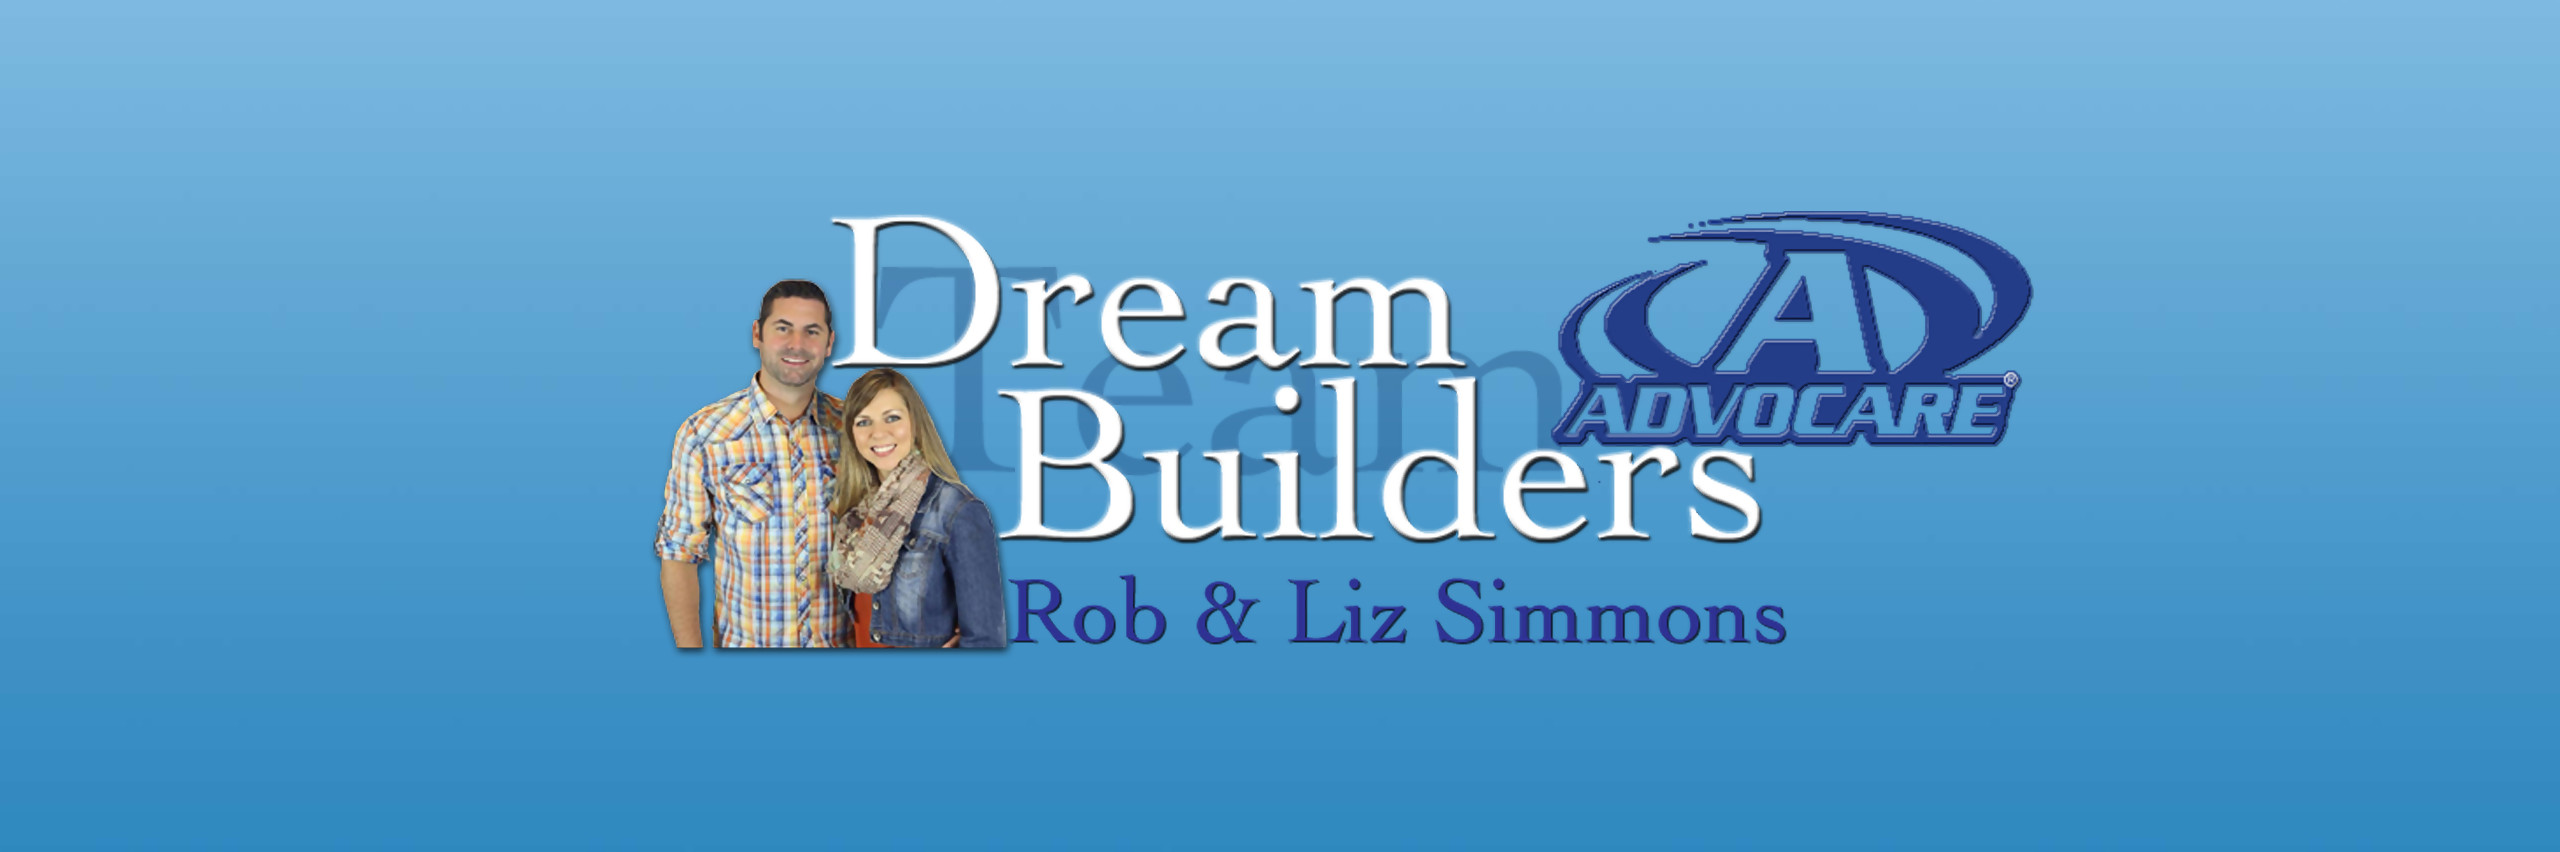 AdvoCare Dream Builders